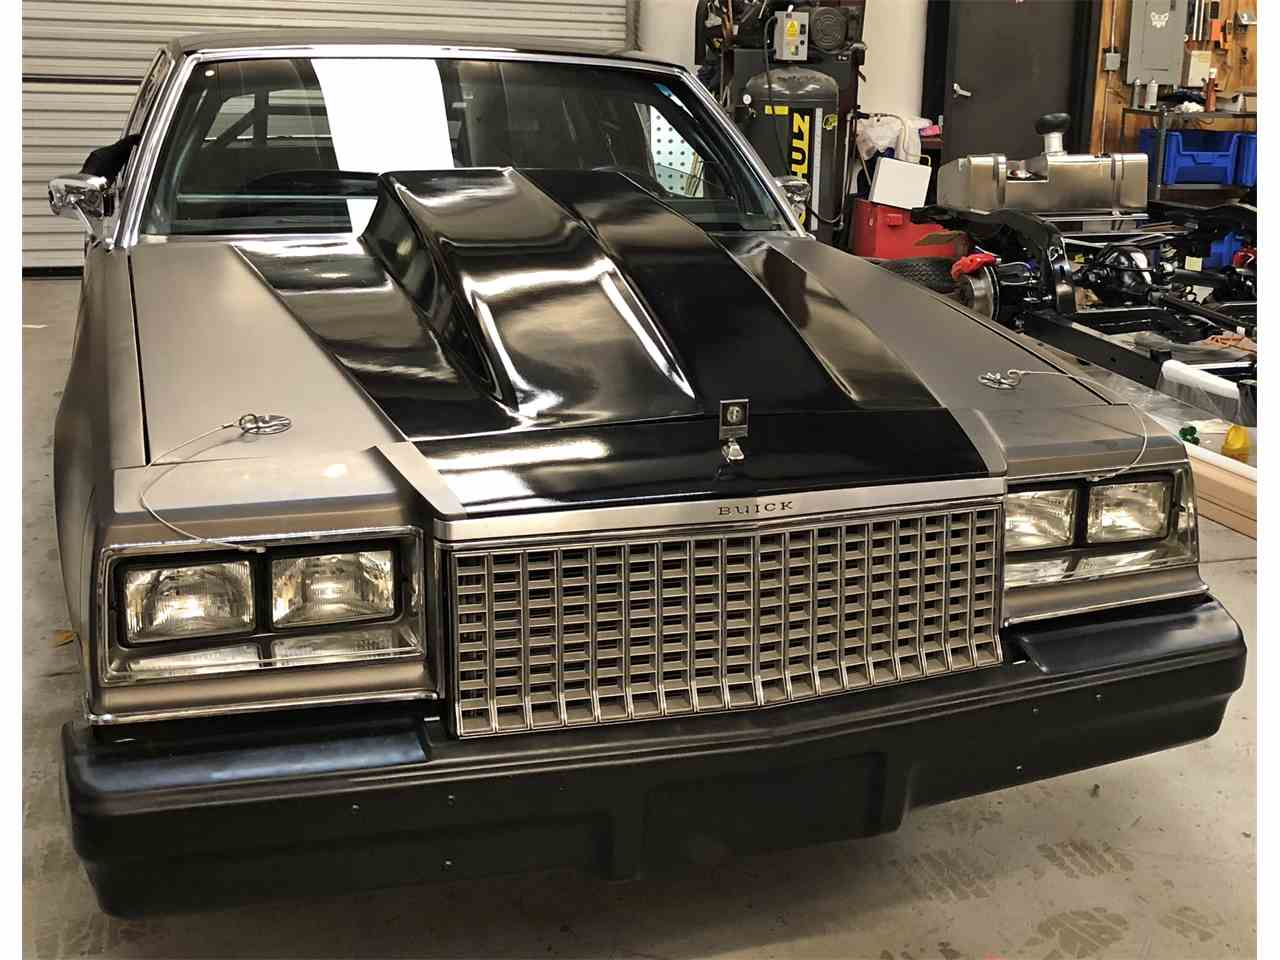 automatic galleries photos for cars buick photo mecum by hp topworldauto coupe landau sale regal of